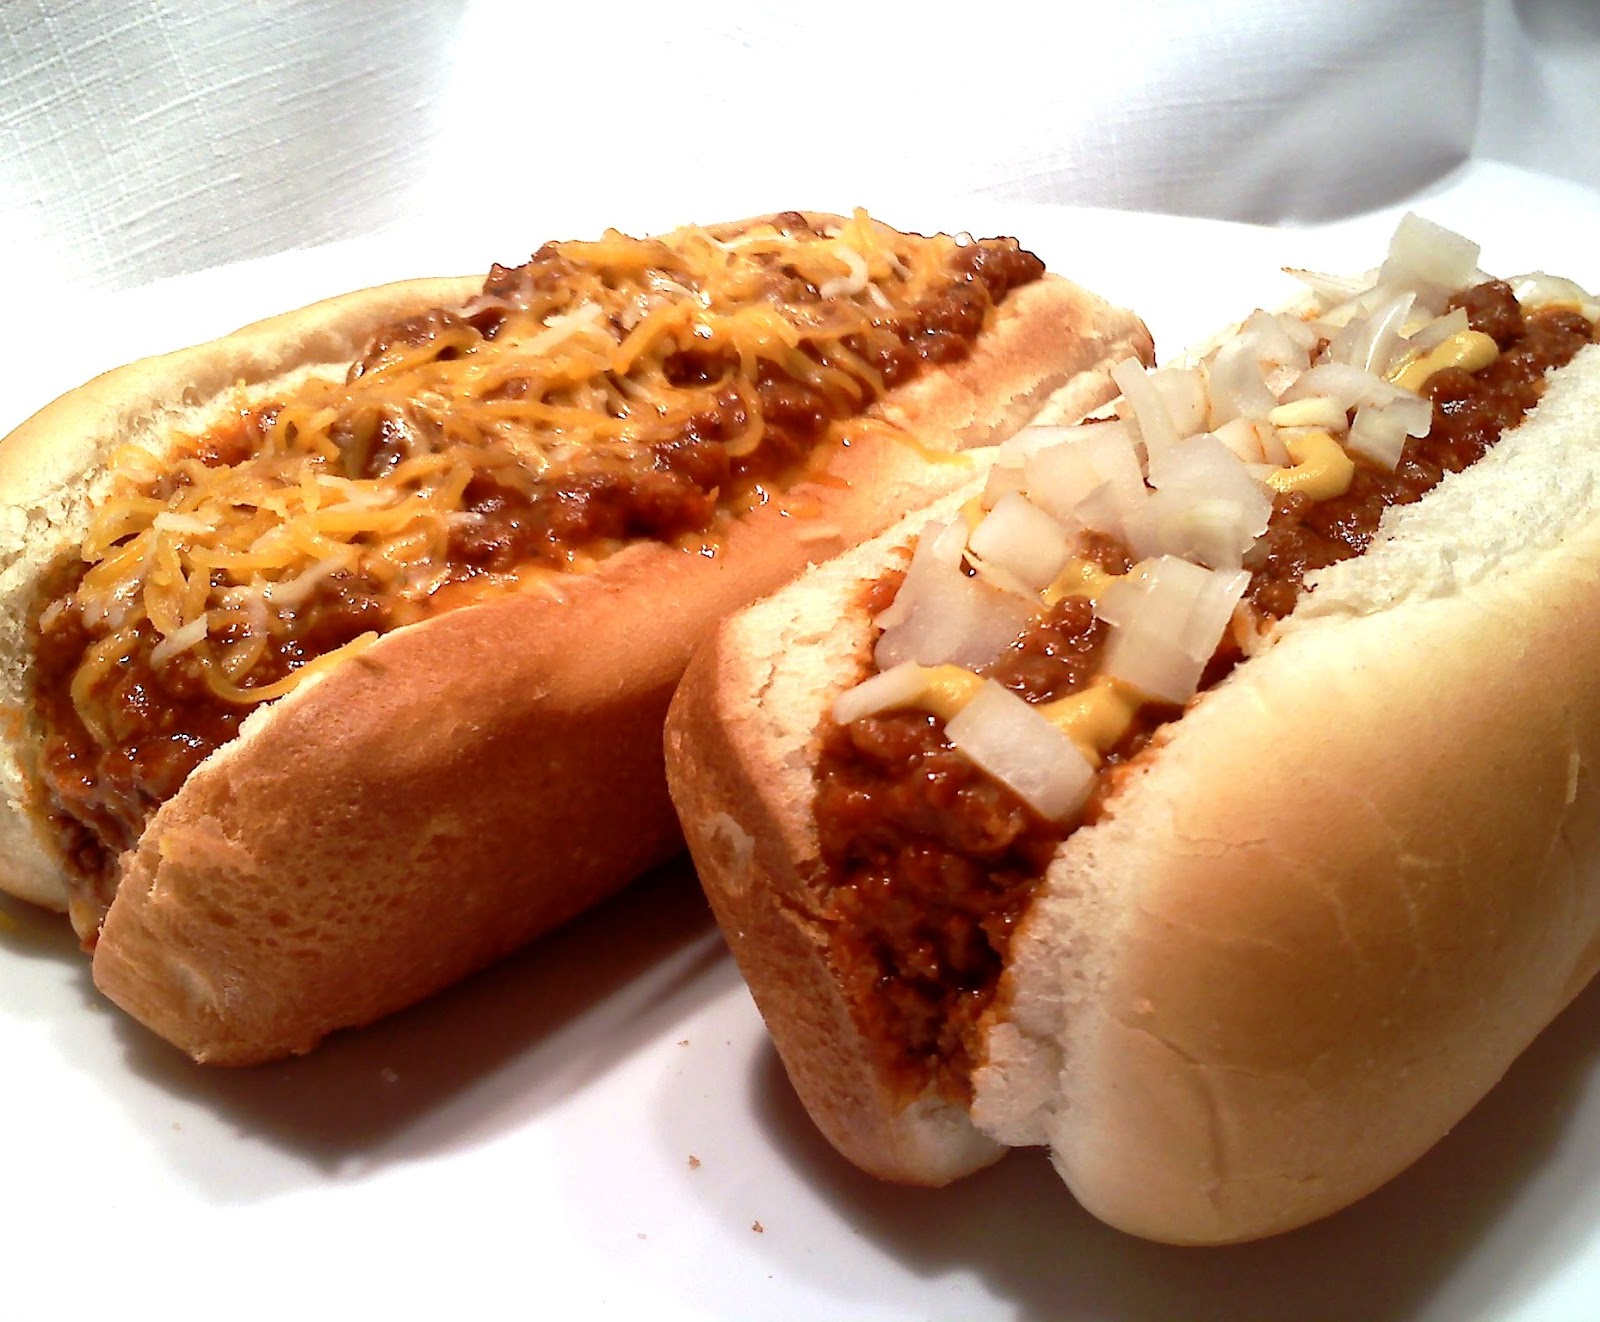 ... good chili dog and if you already have the chili man this is one